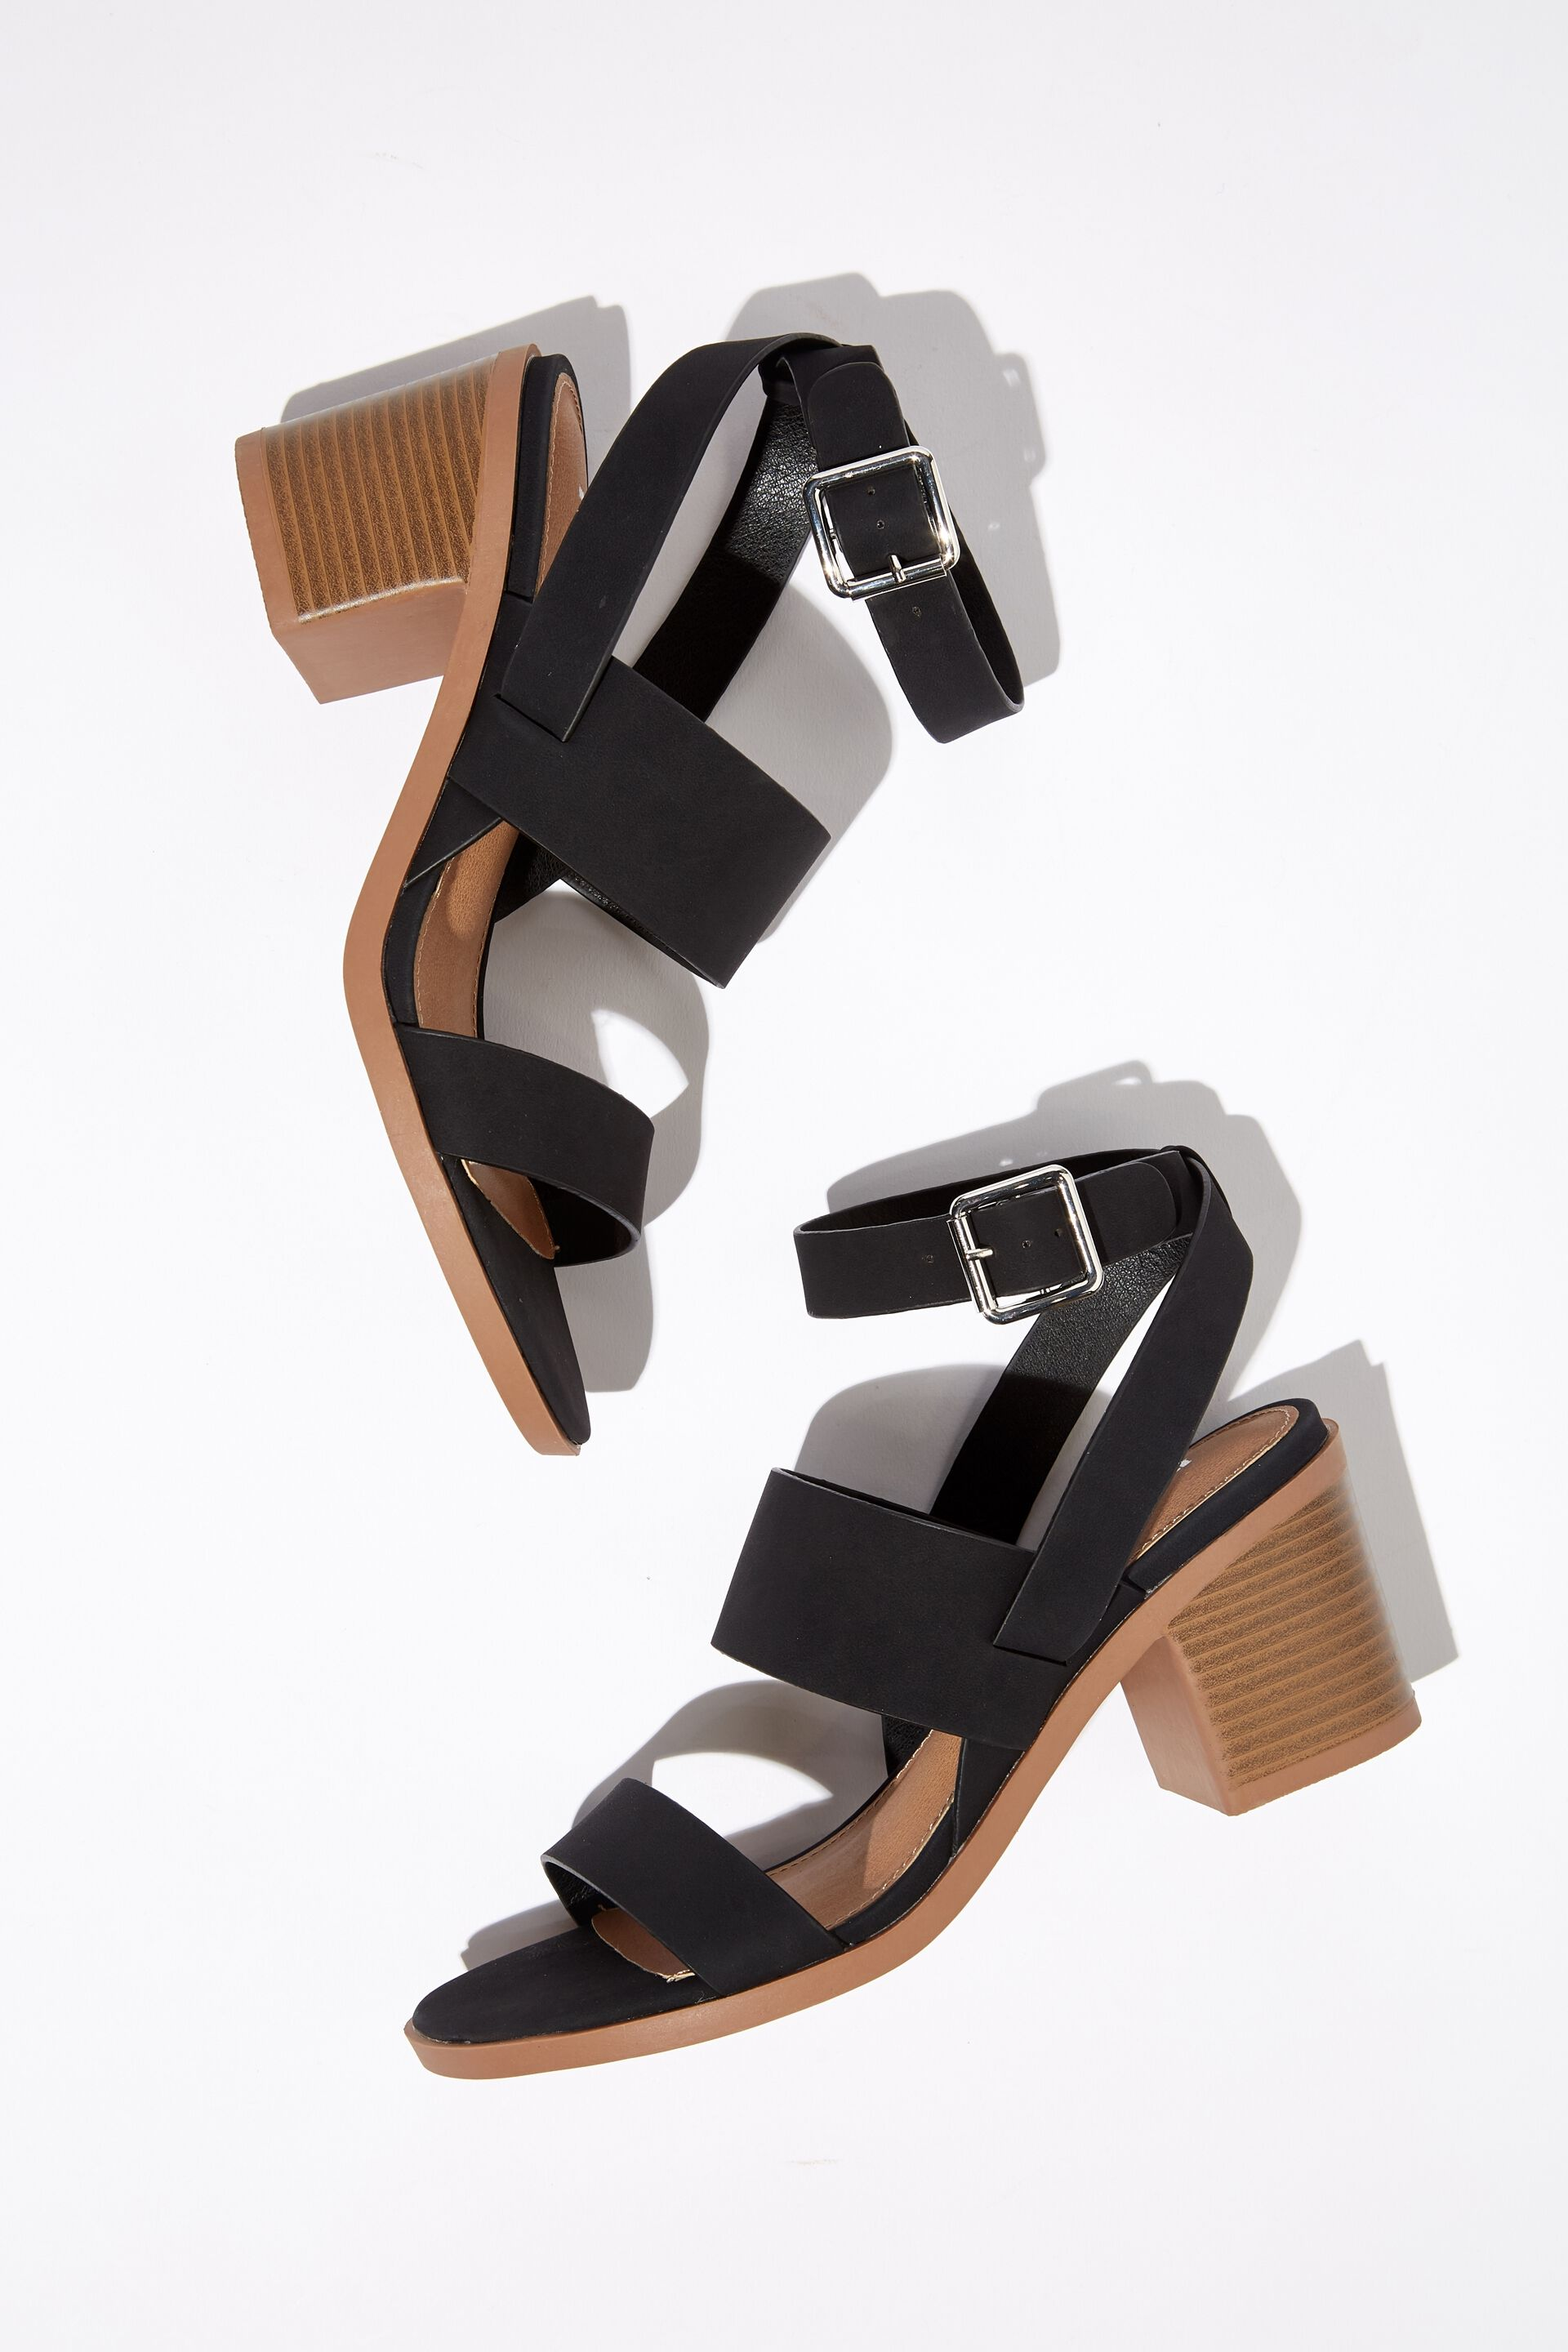 Hayley Stack Heel | Women's Fashion Accessories & Shoes